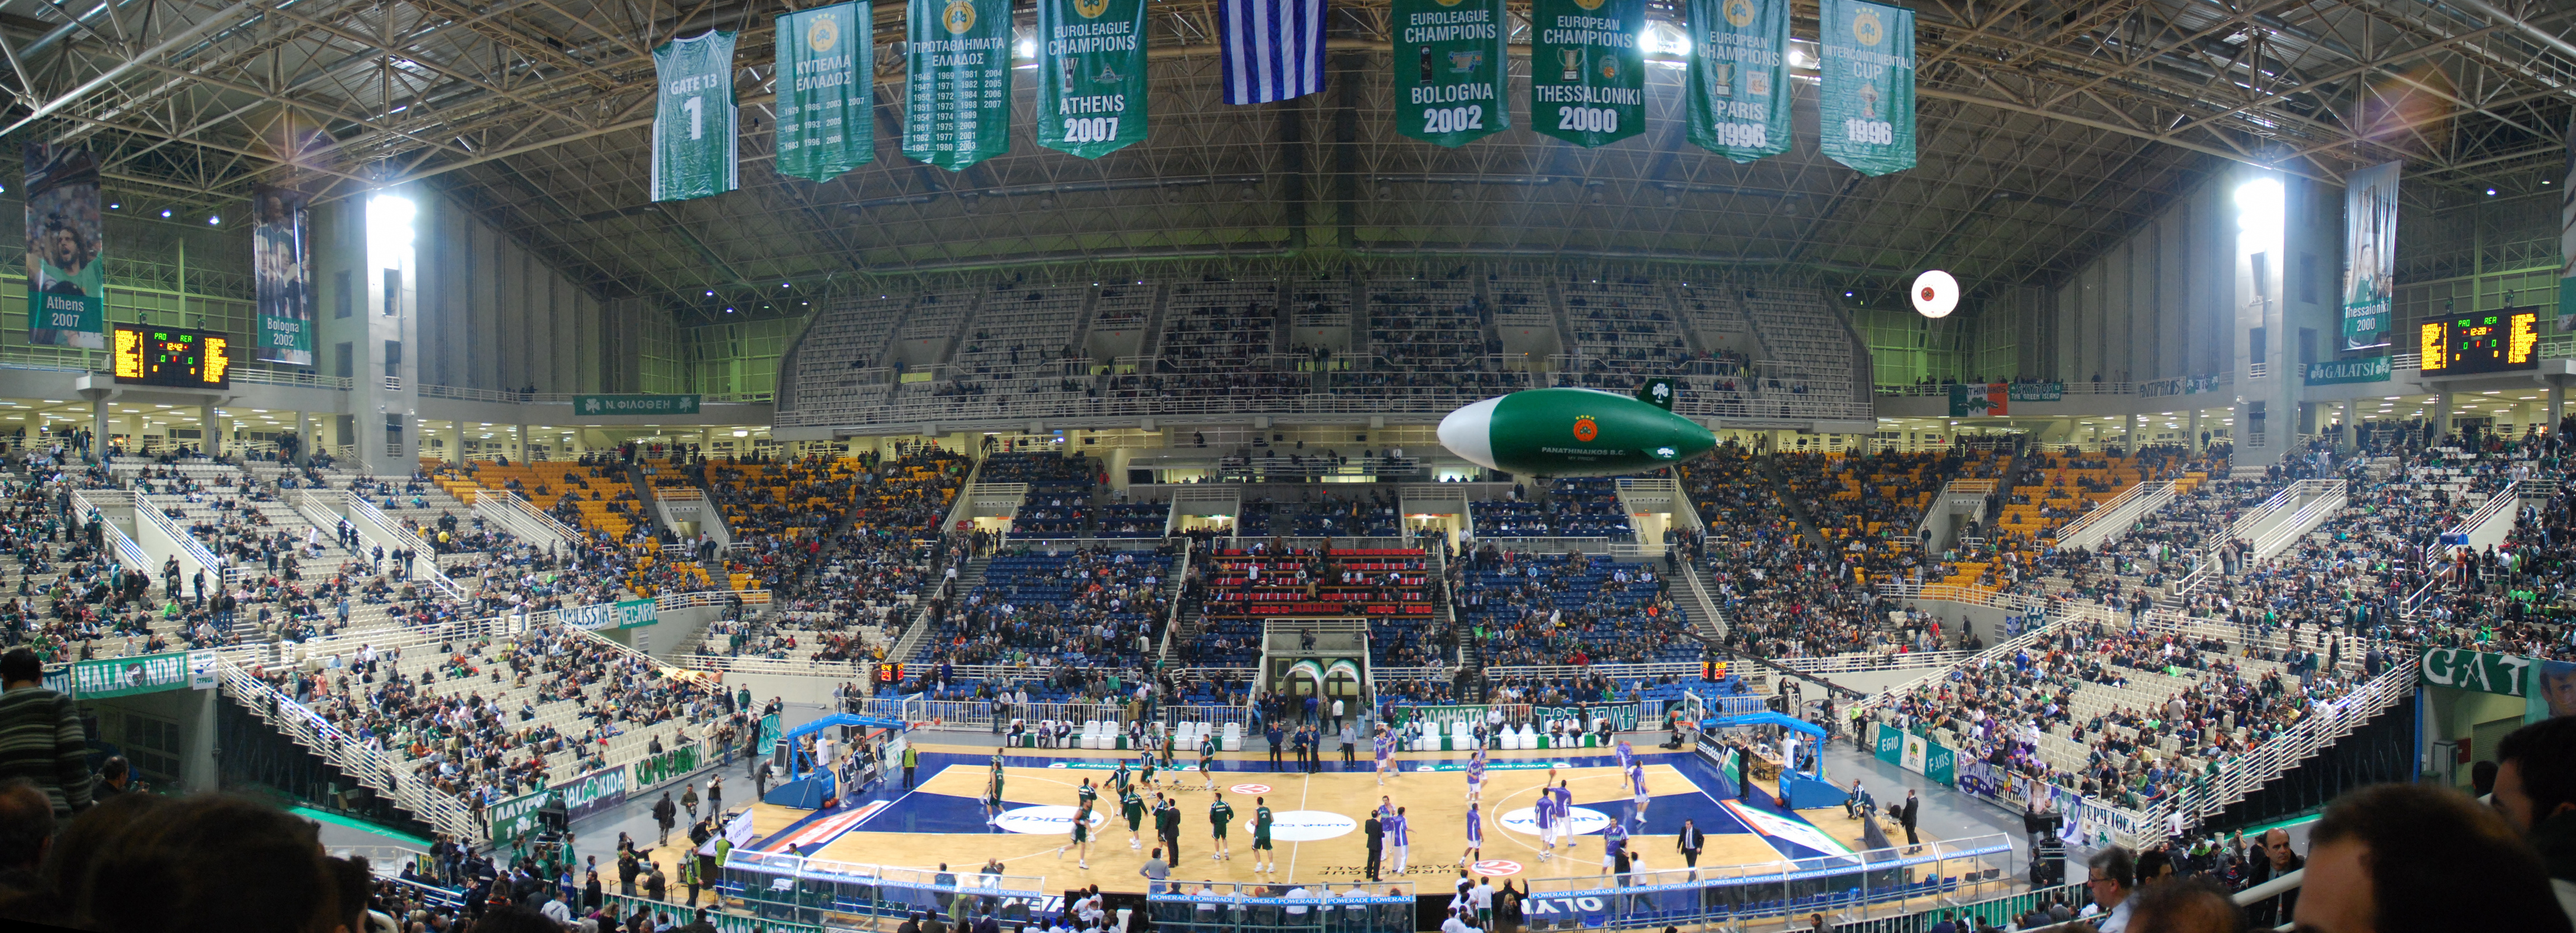 Interior_of_OAKA_Olympic_Indoor_Hall,_Athens